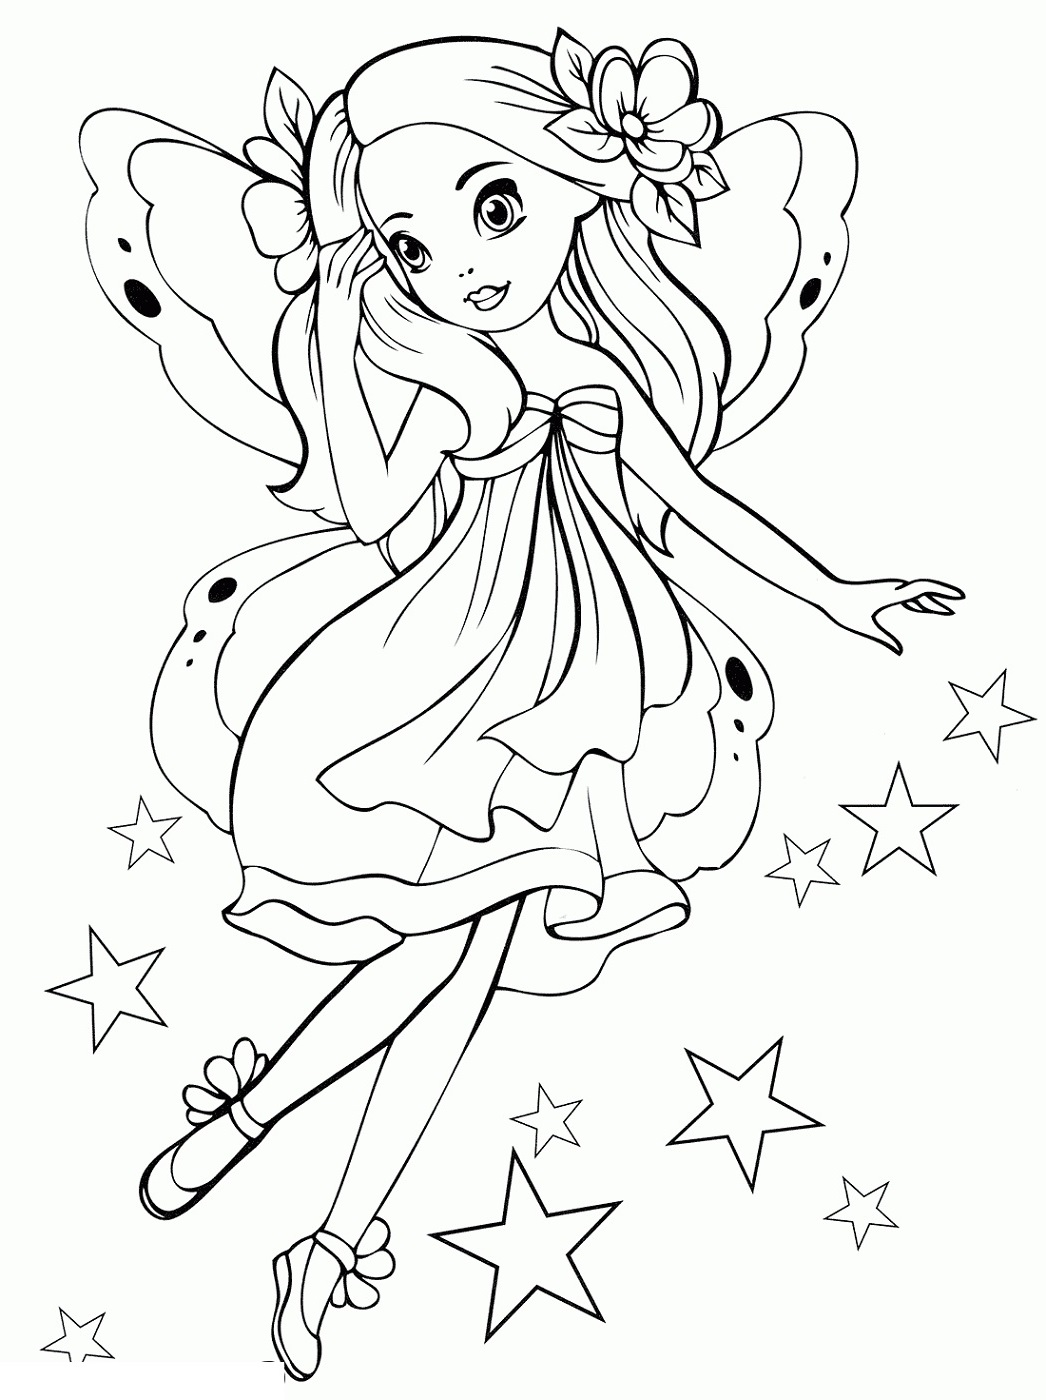 Printable Coloring Pages for Girls | 101 Coloring